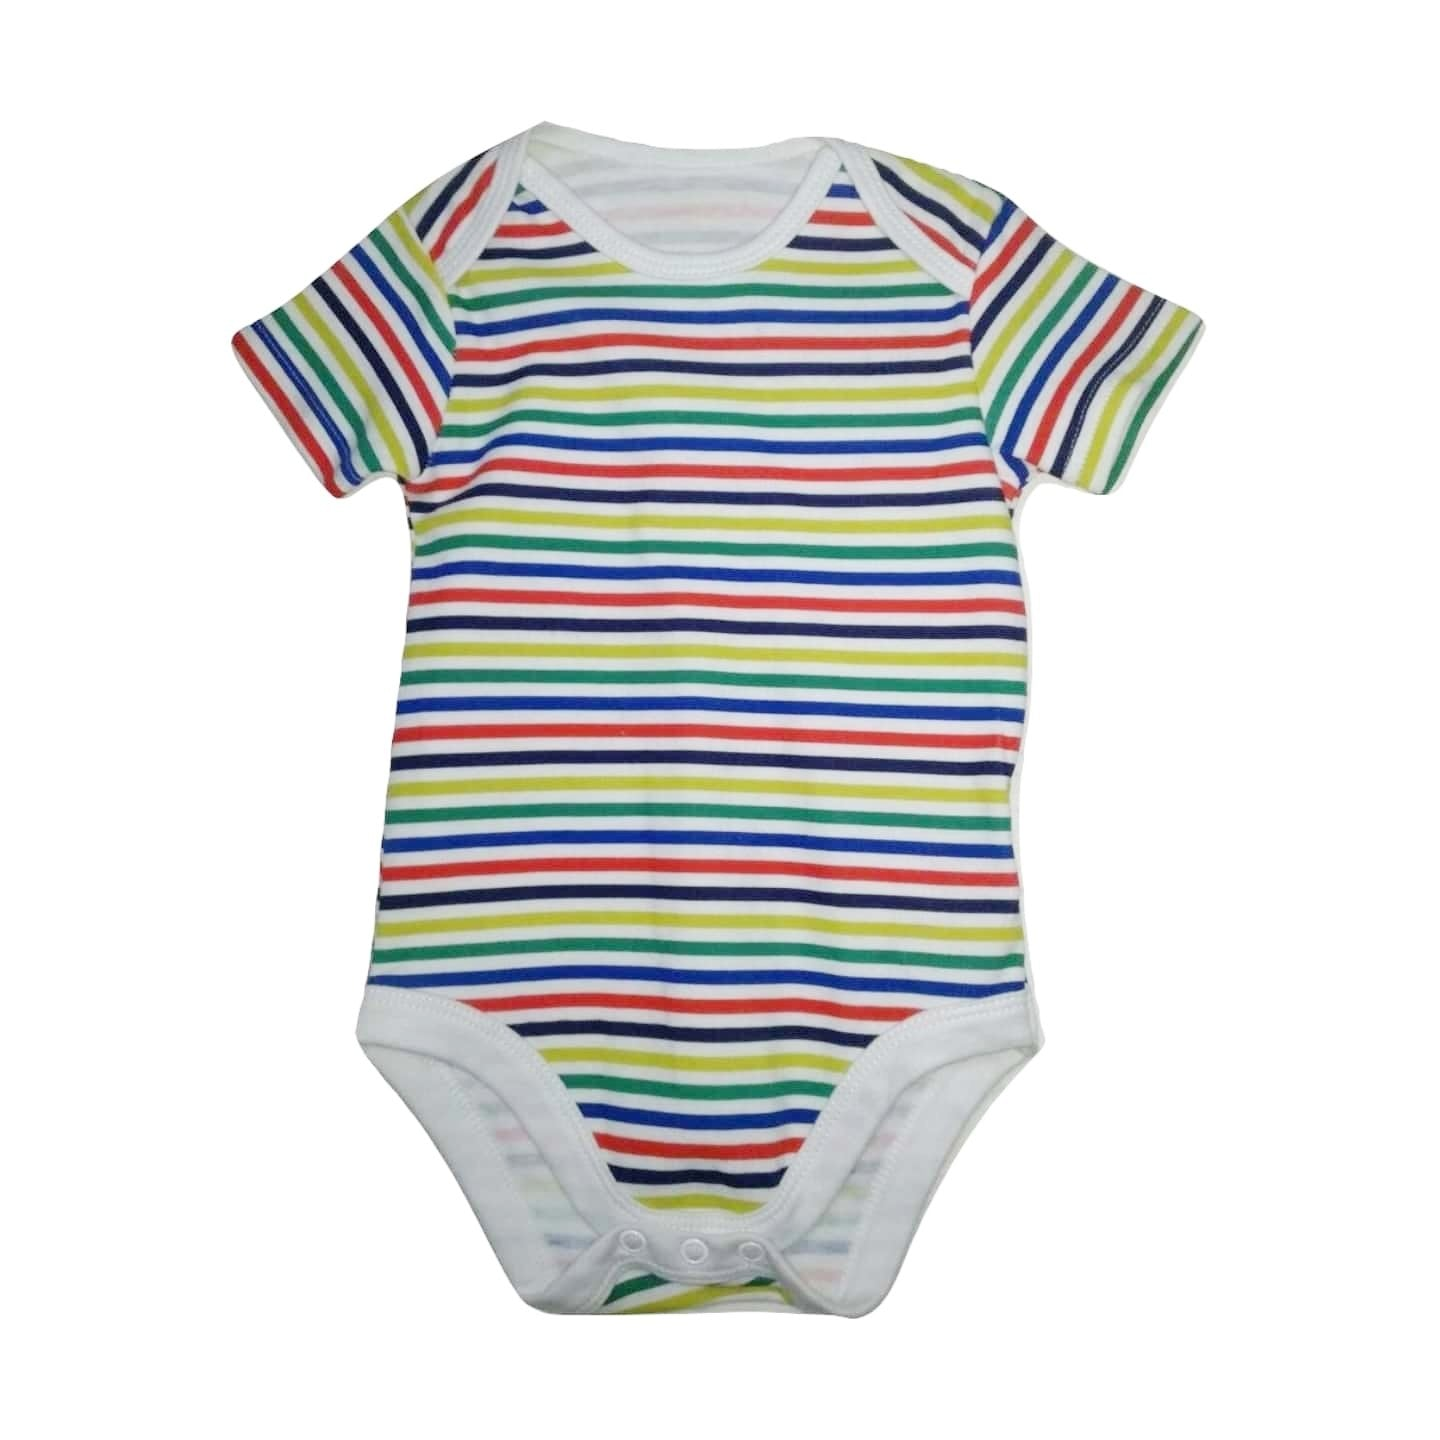 Nutmeg Multistriped Bodysuit - Stockpoint Apparel Outlet